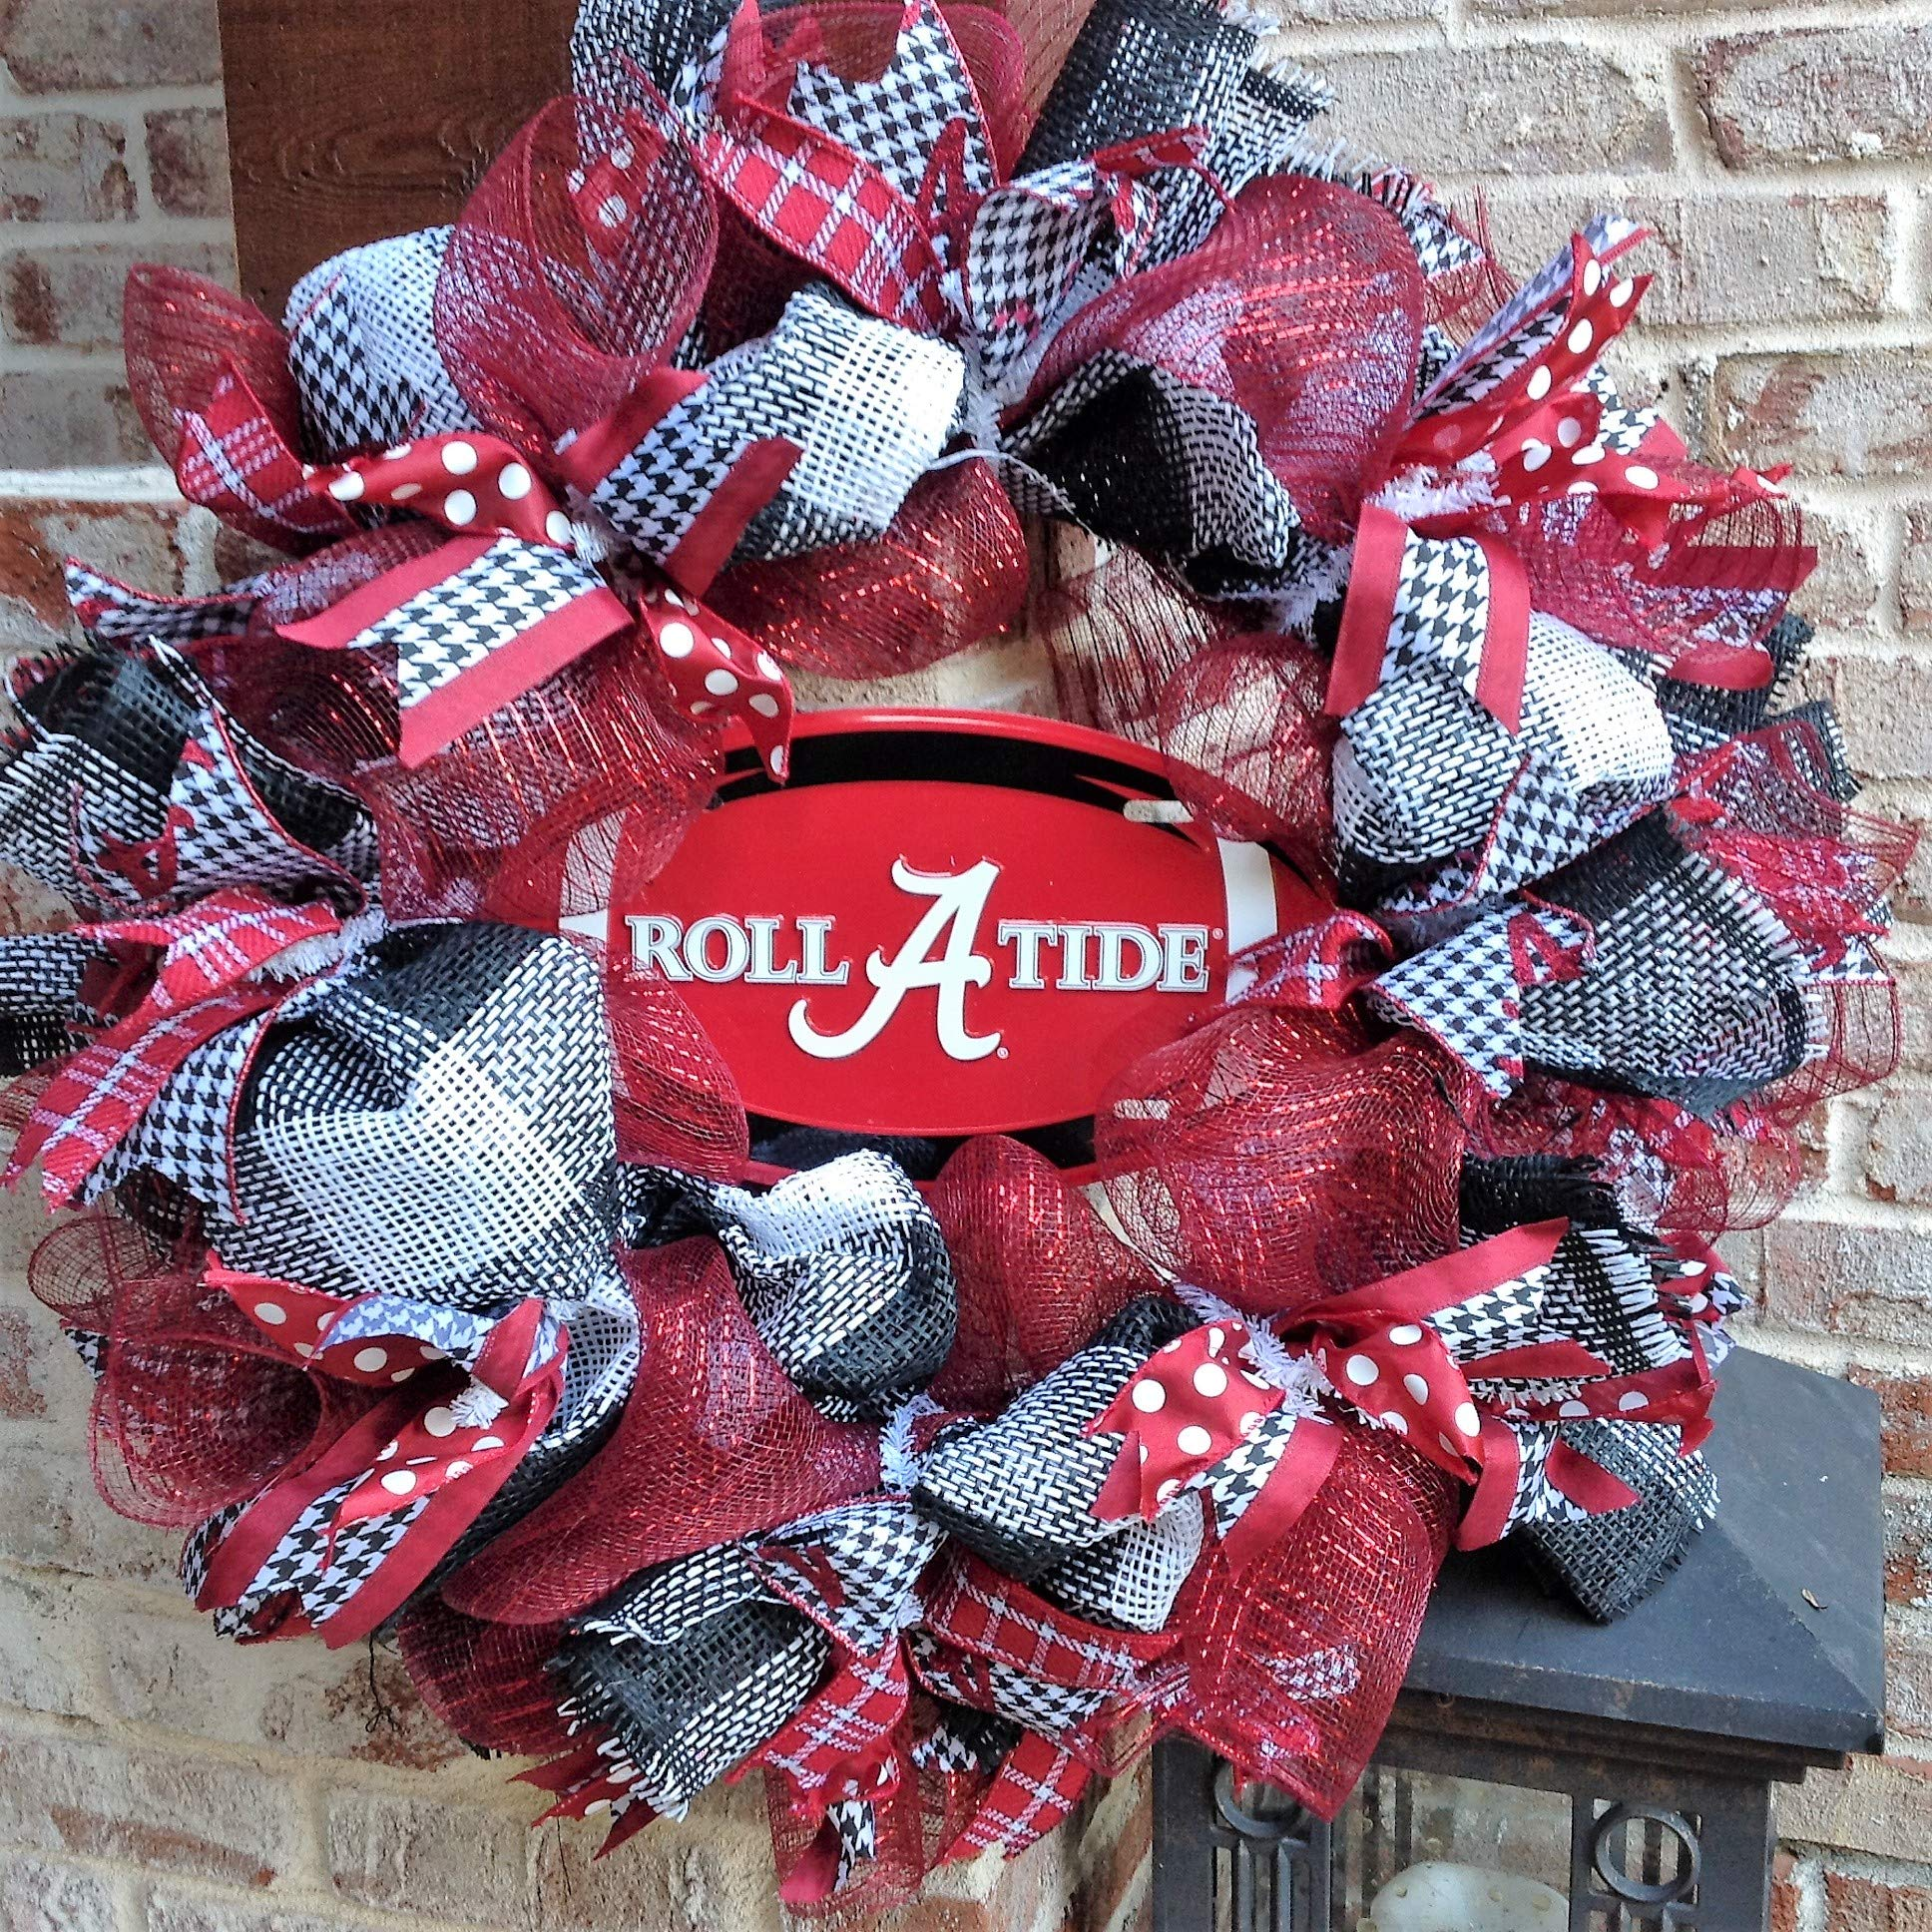 Flora Decor Alabama Crimson Tide Collegiate Wreath w Football -26''